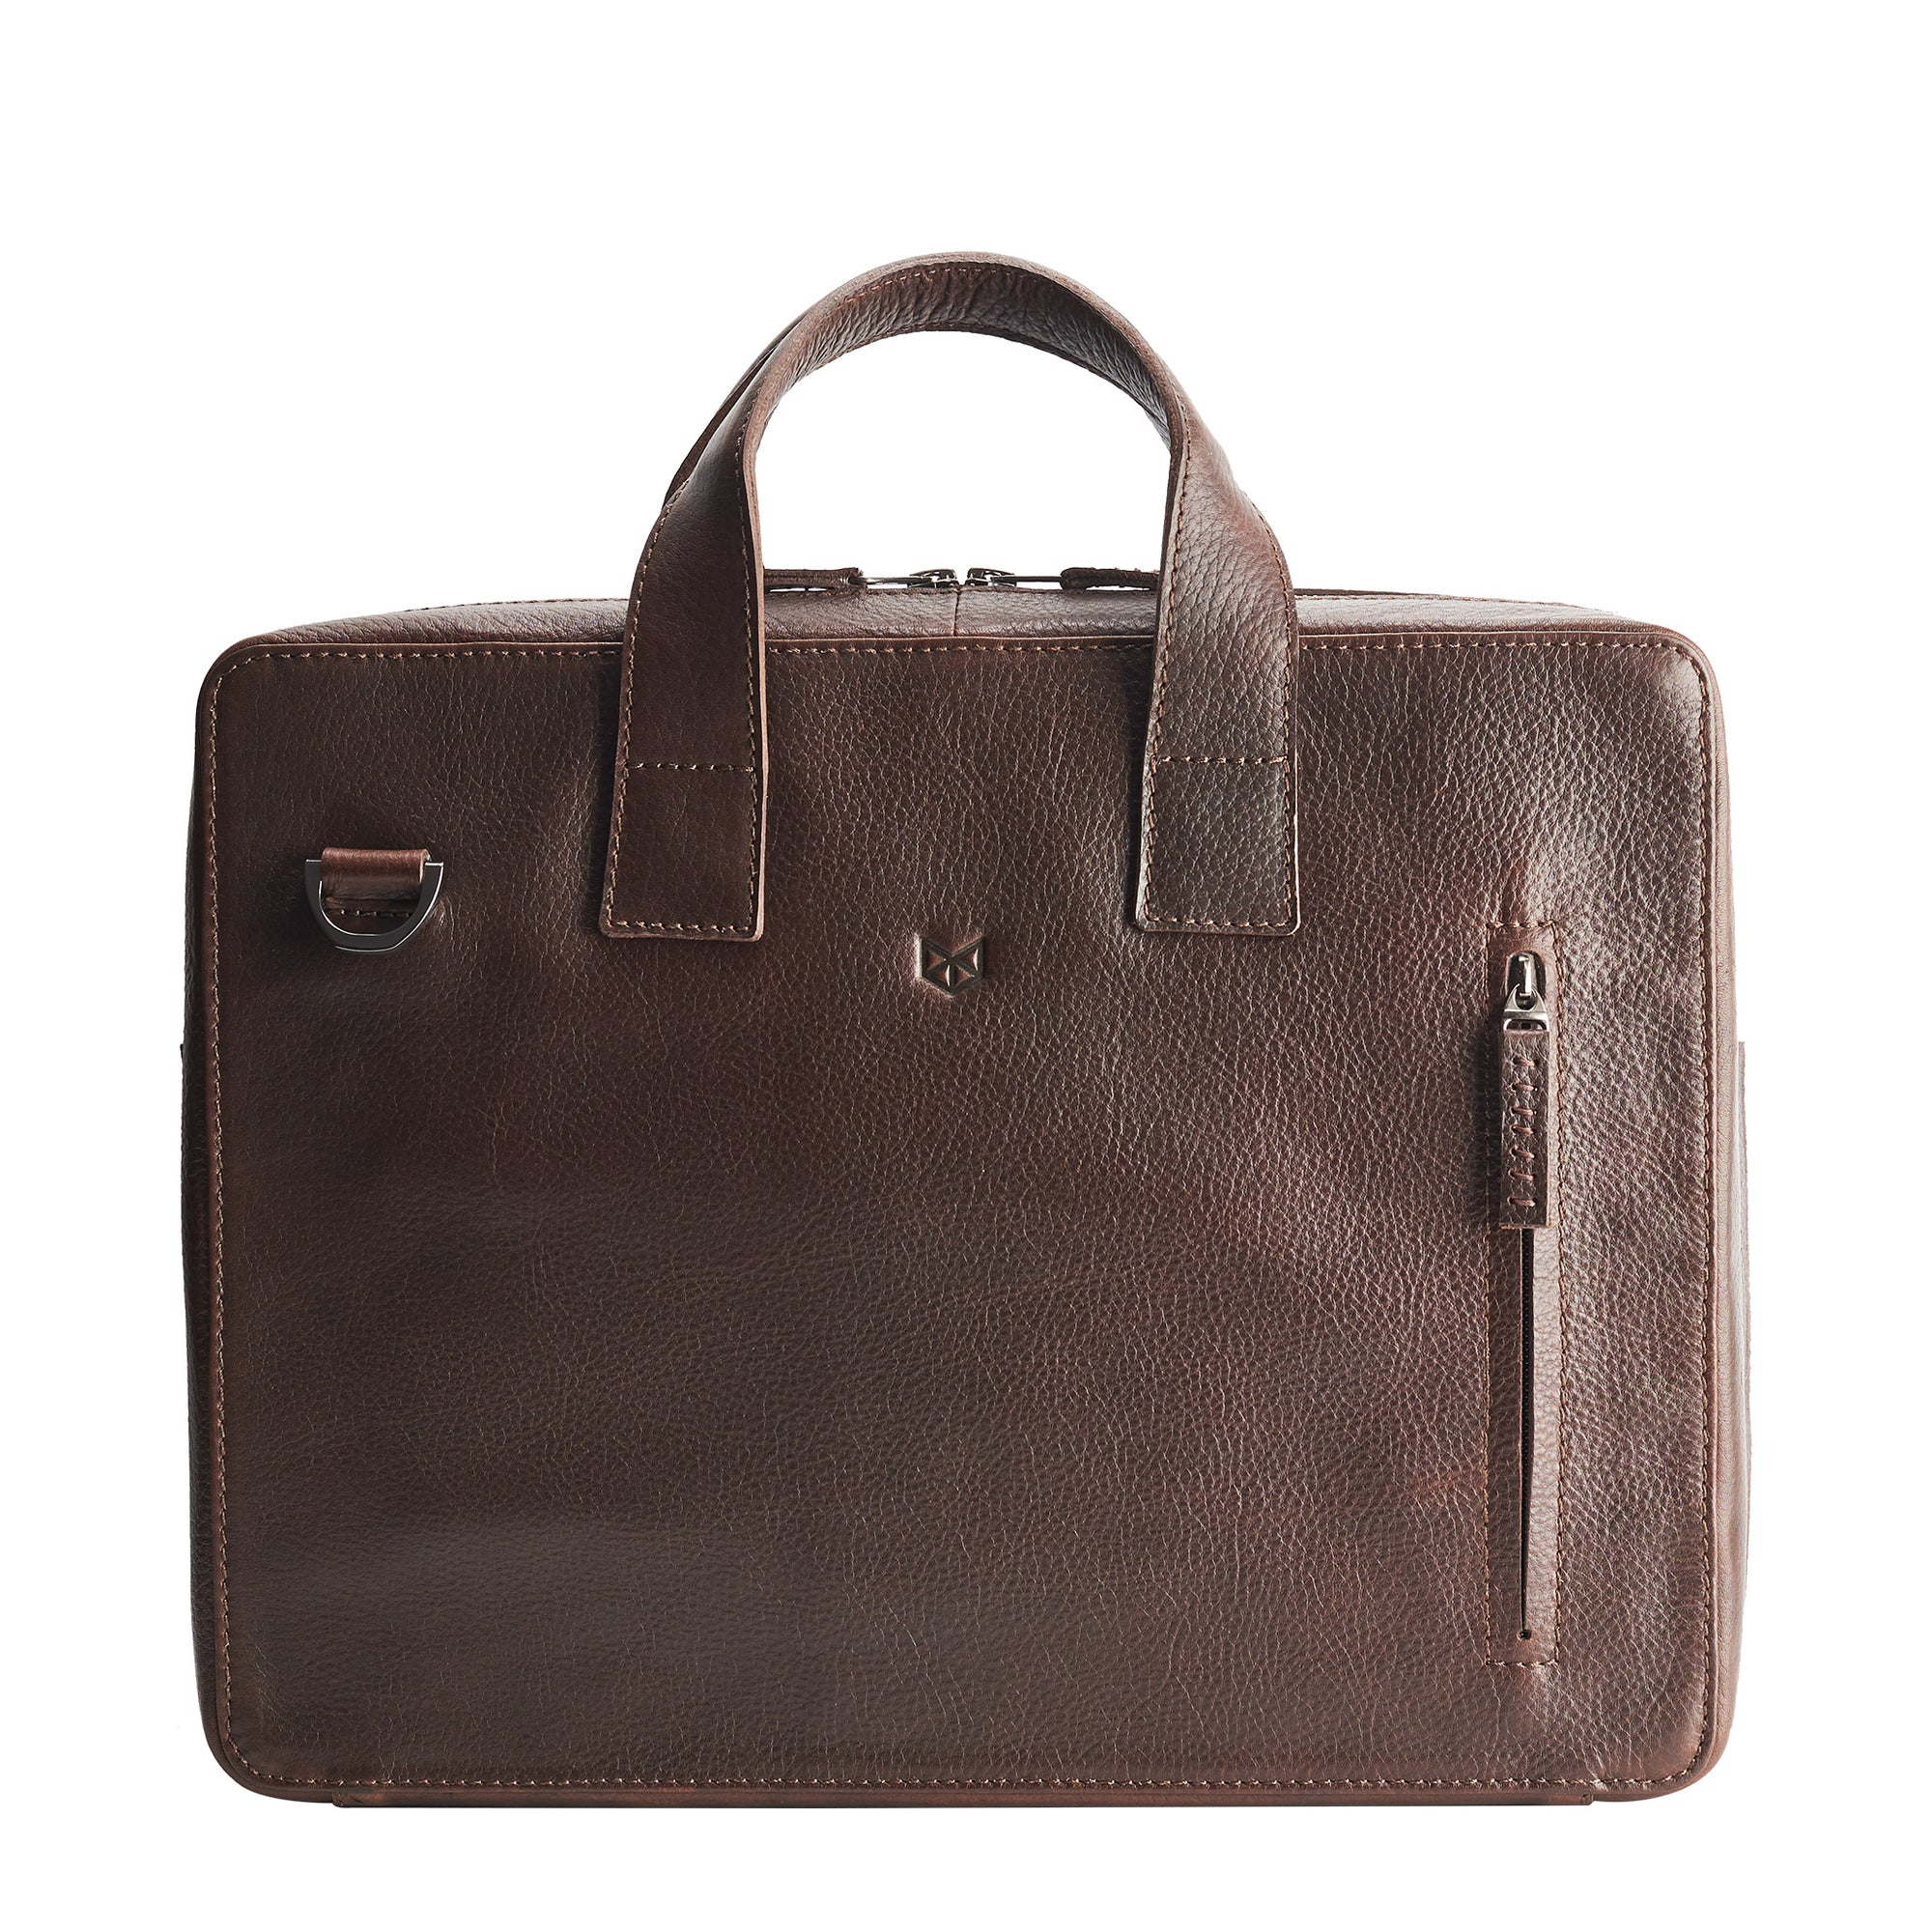 Front. Soft leather briefcase dark brown color